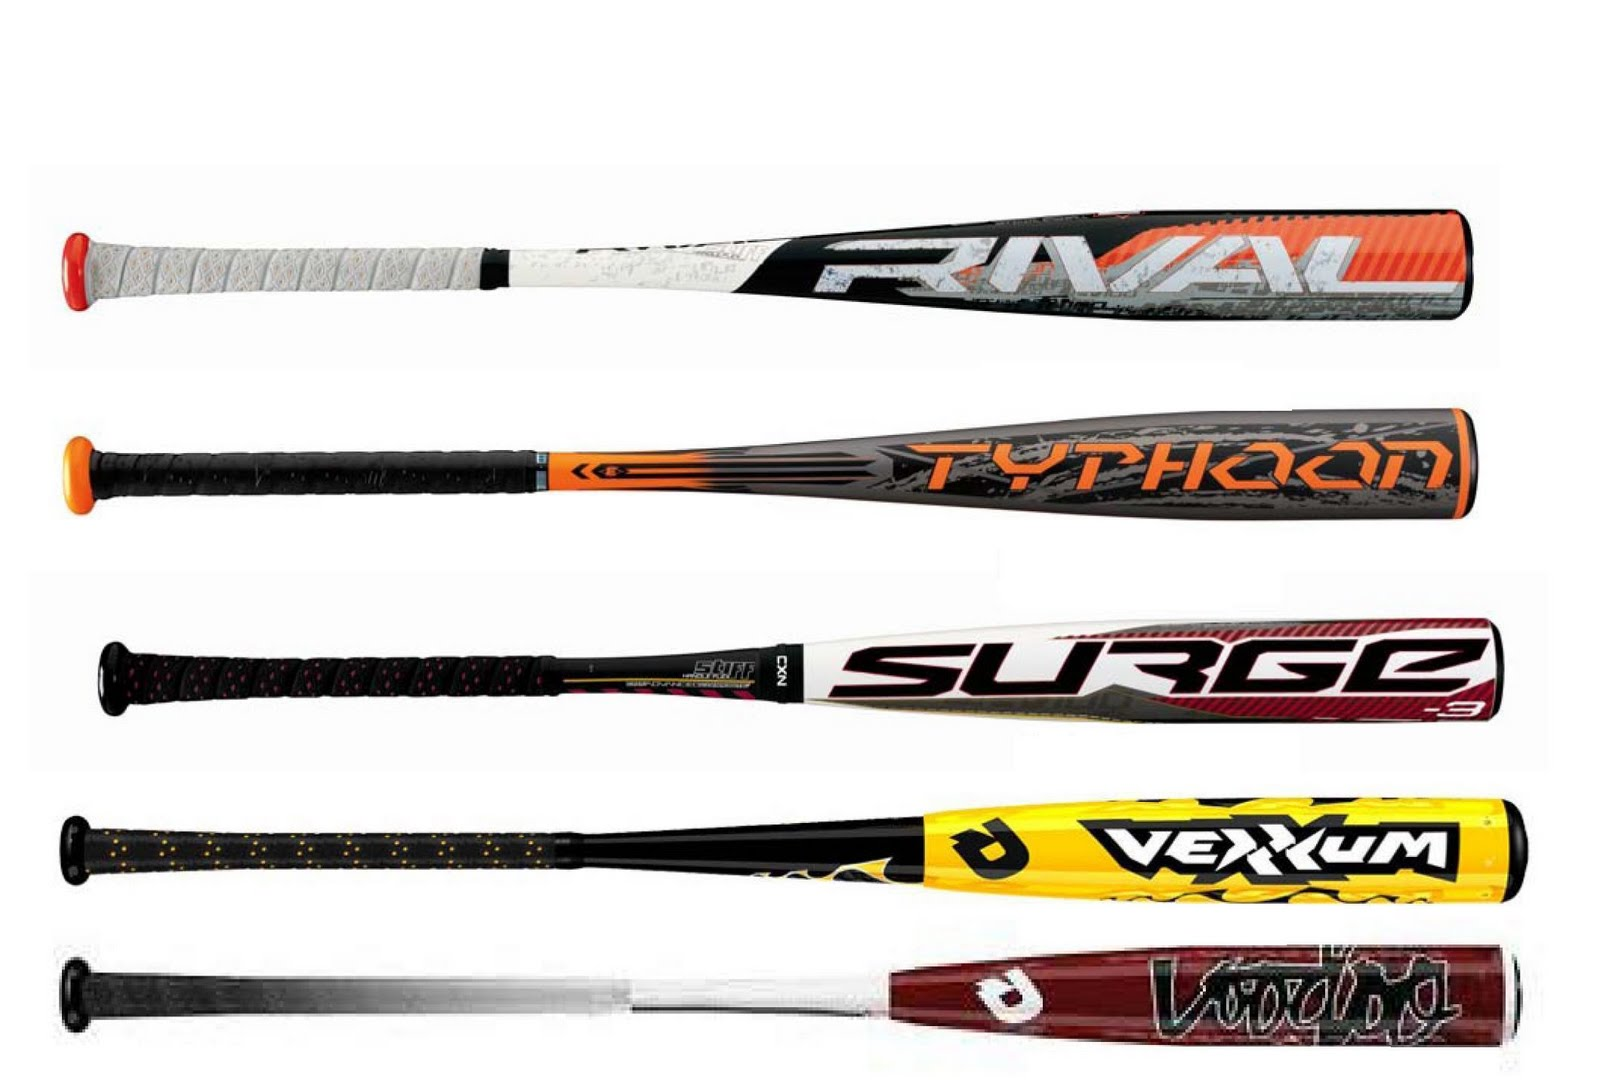 The Best Youth Wood Bats Why They Make Better Baseball